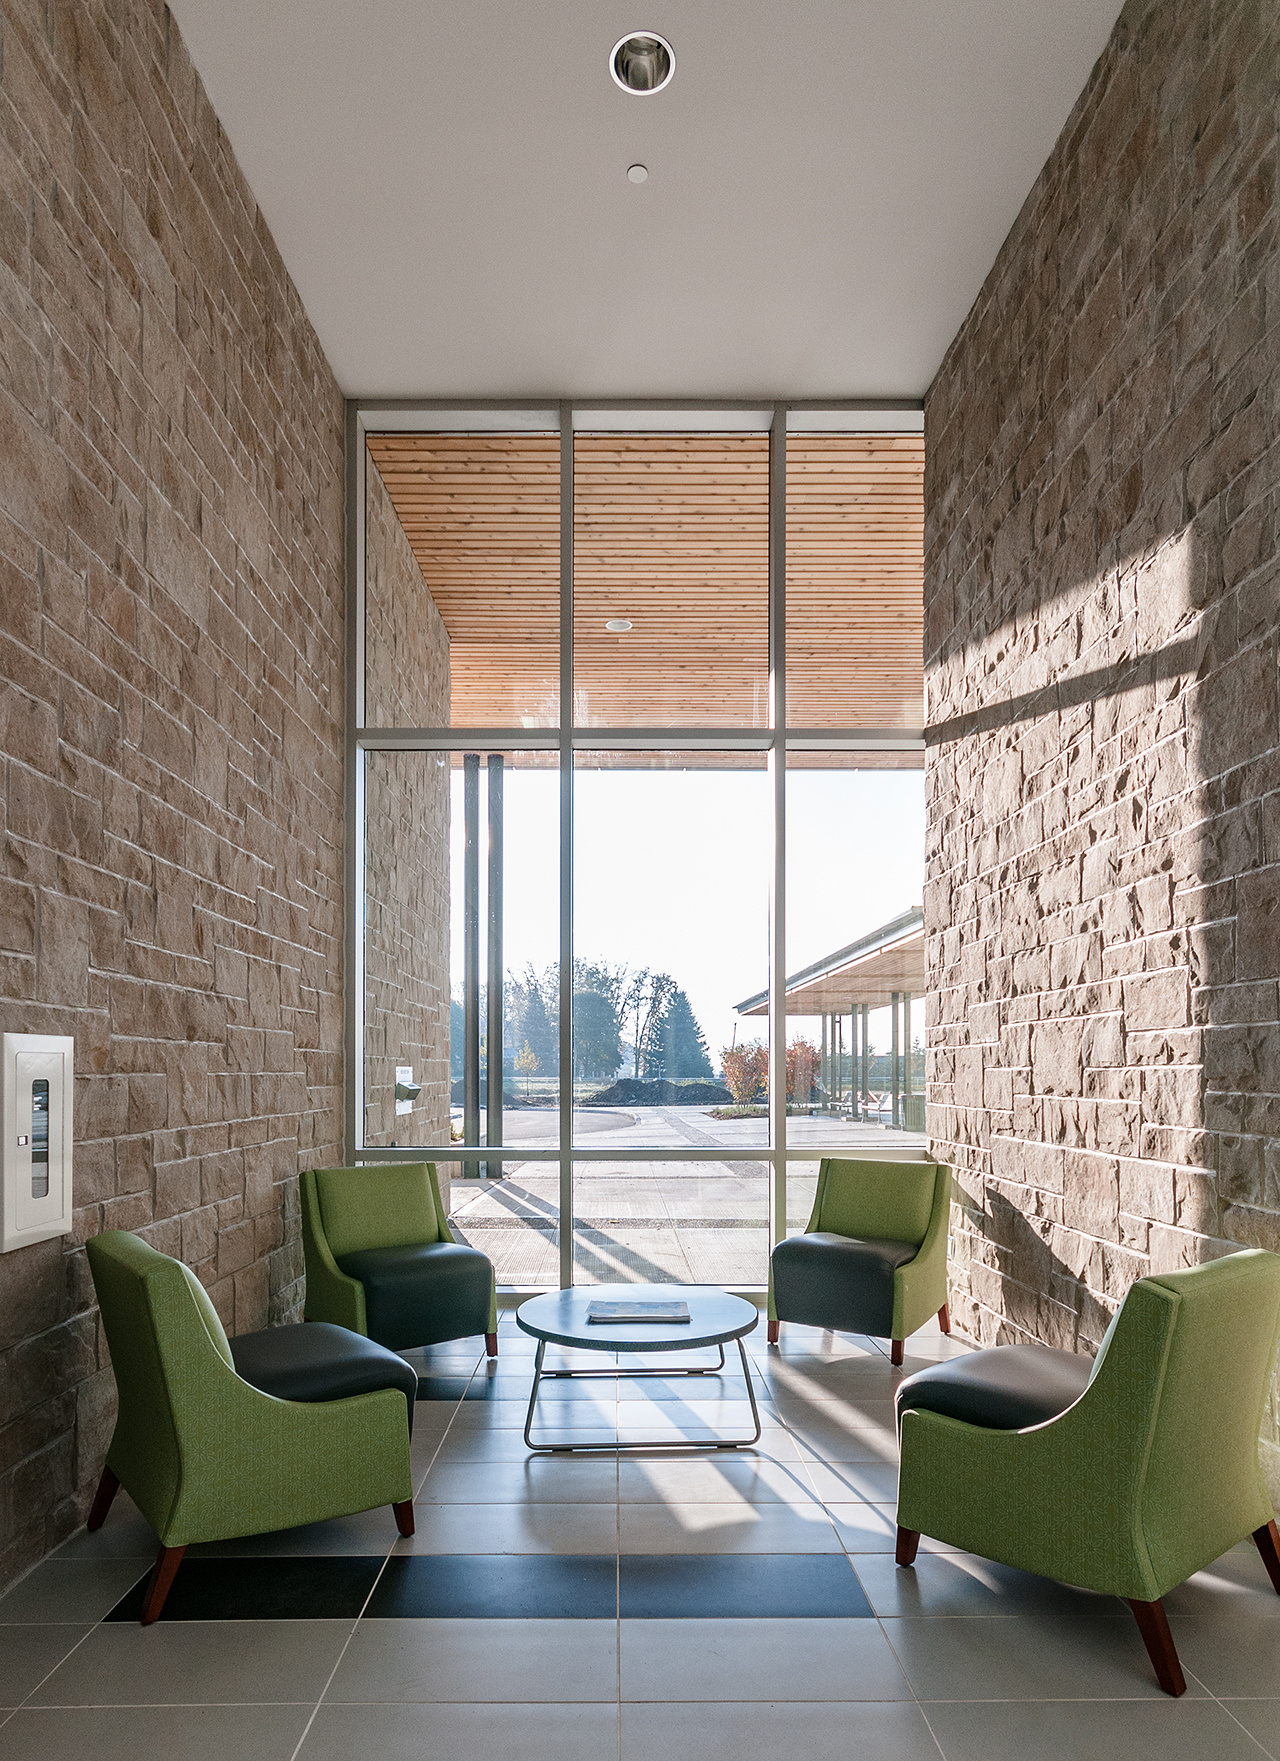 Seating Area and Floor to Ceiling Windows - Interior Photographer Scott Webb